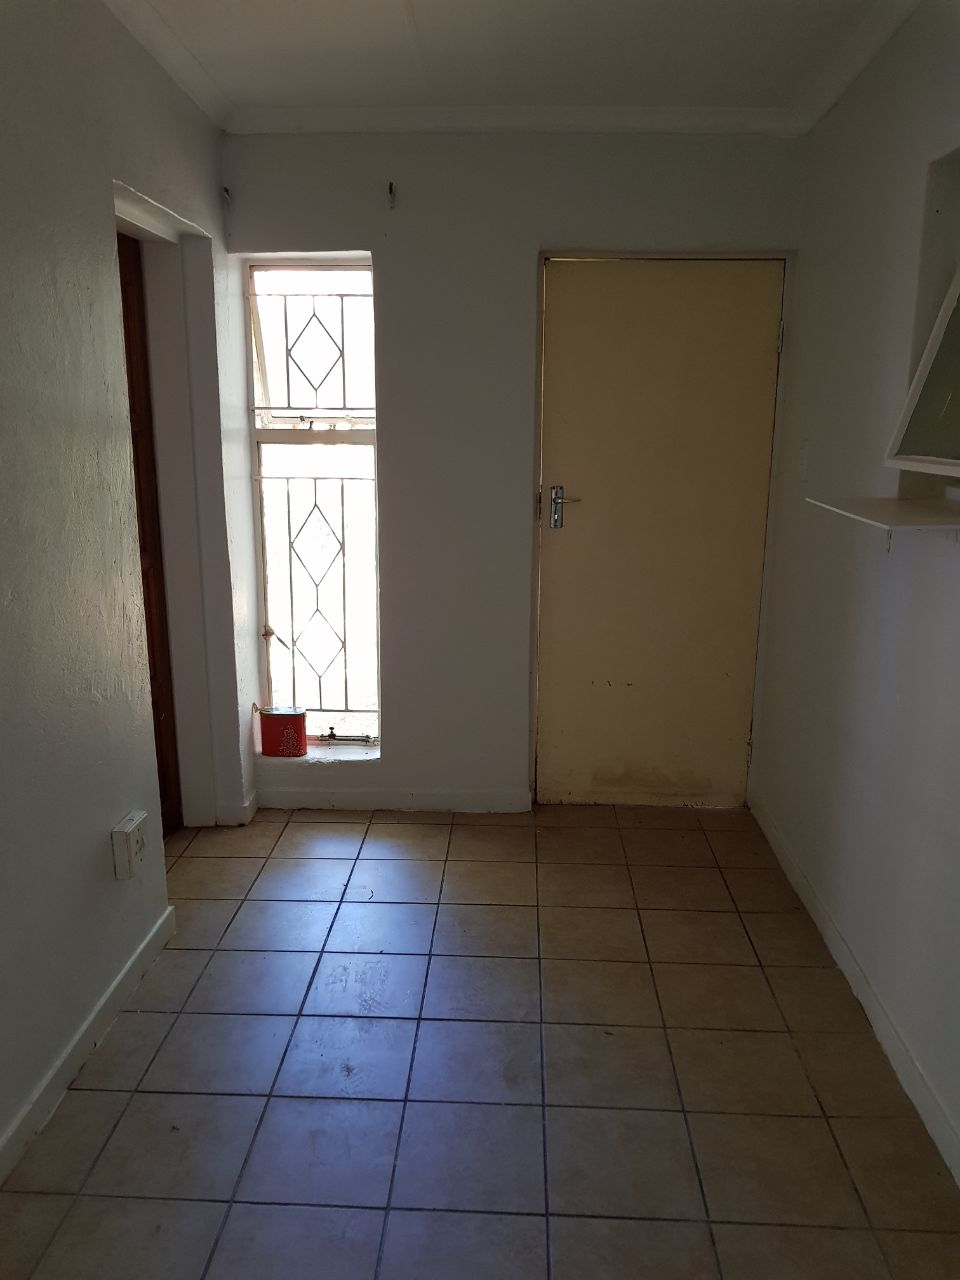 2 bedroom House for rent in the Doornfontein Area, Pretoria North East